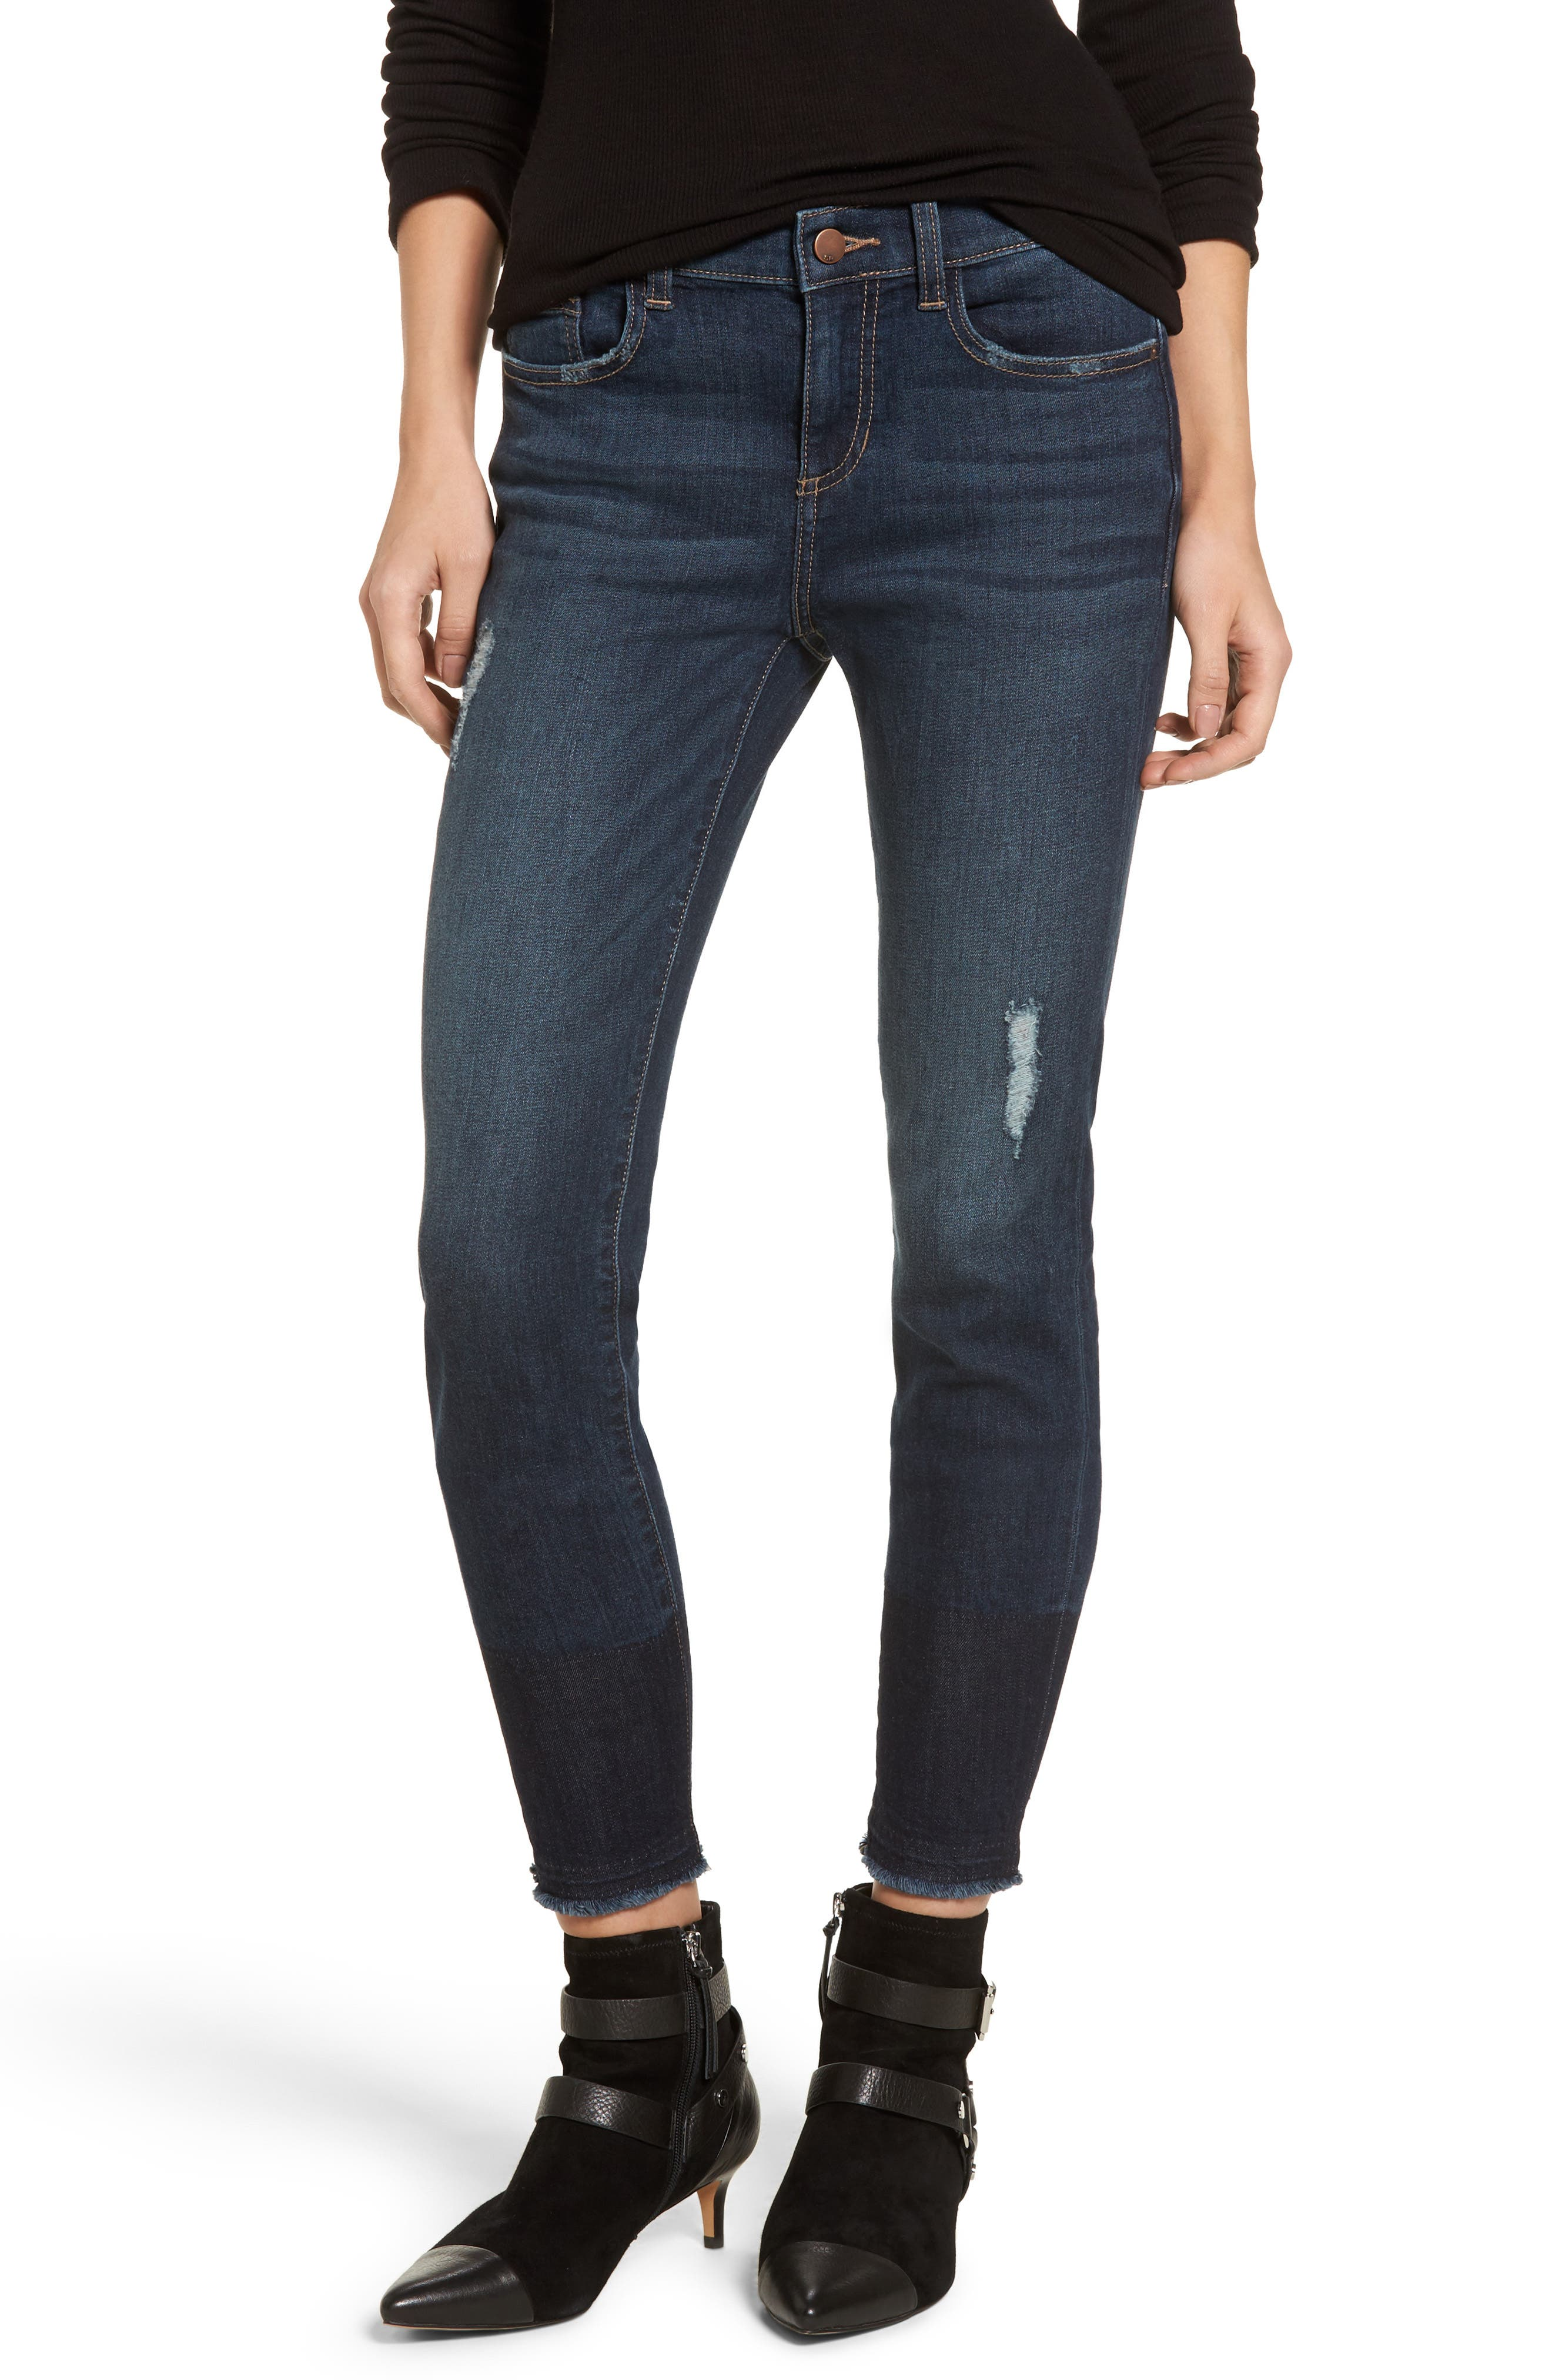 SP Black Colorblock Hem Skinny Jeans